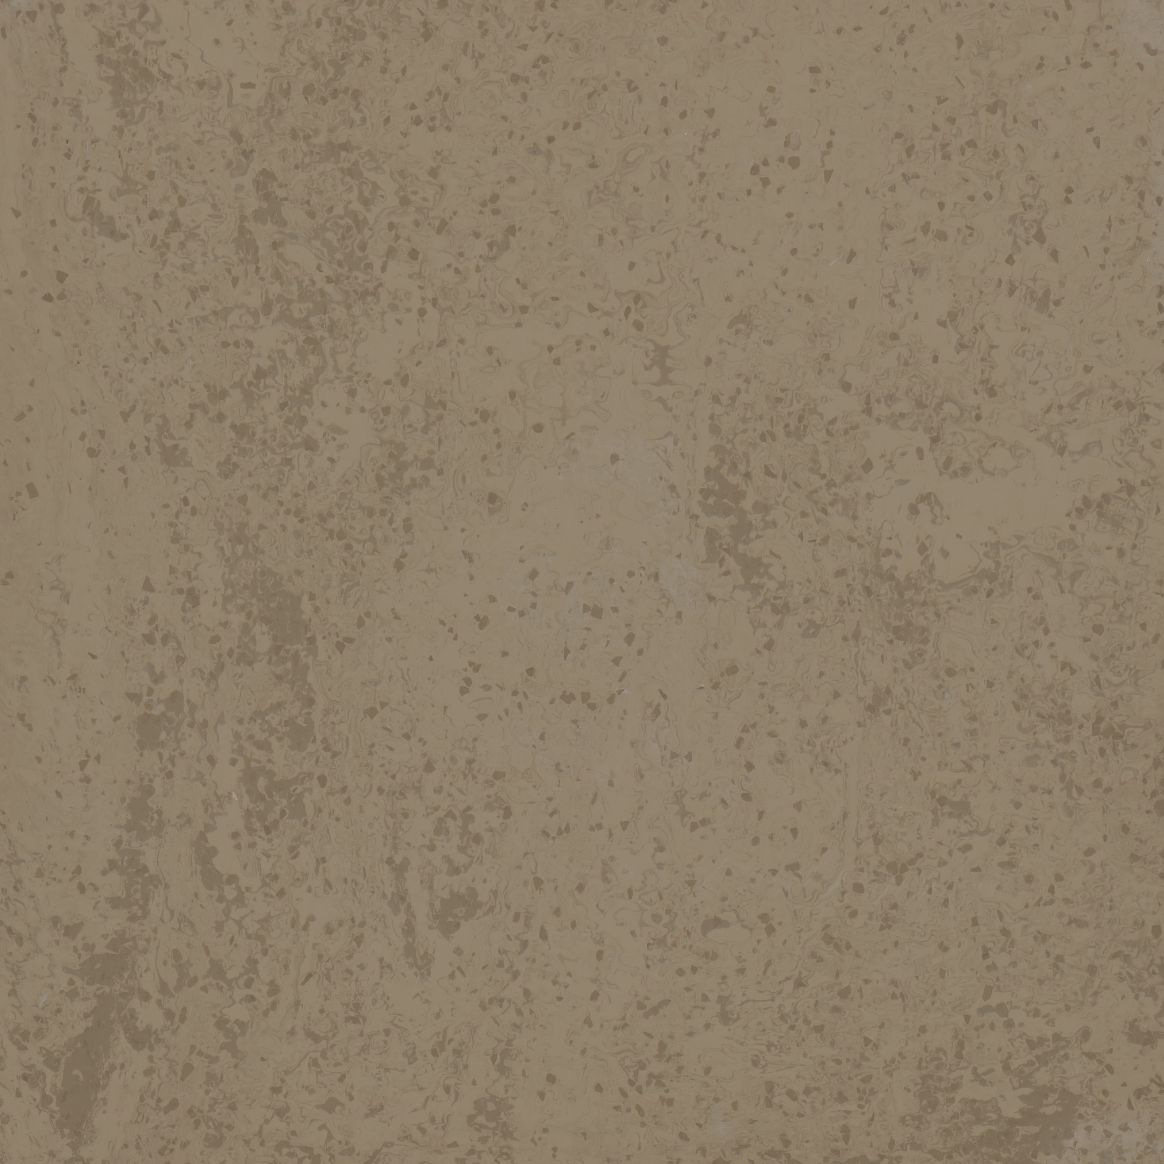 Mannington Teles Tile 17 1/2 x 17 1/2 Cliffside